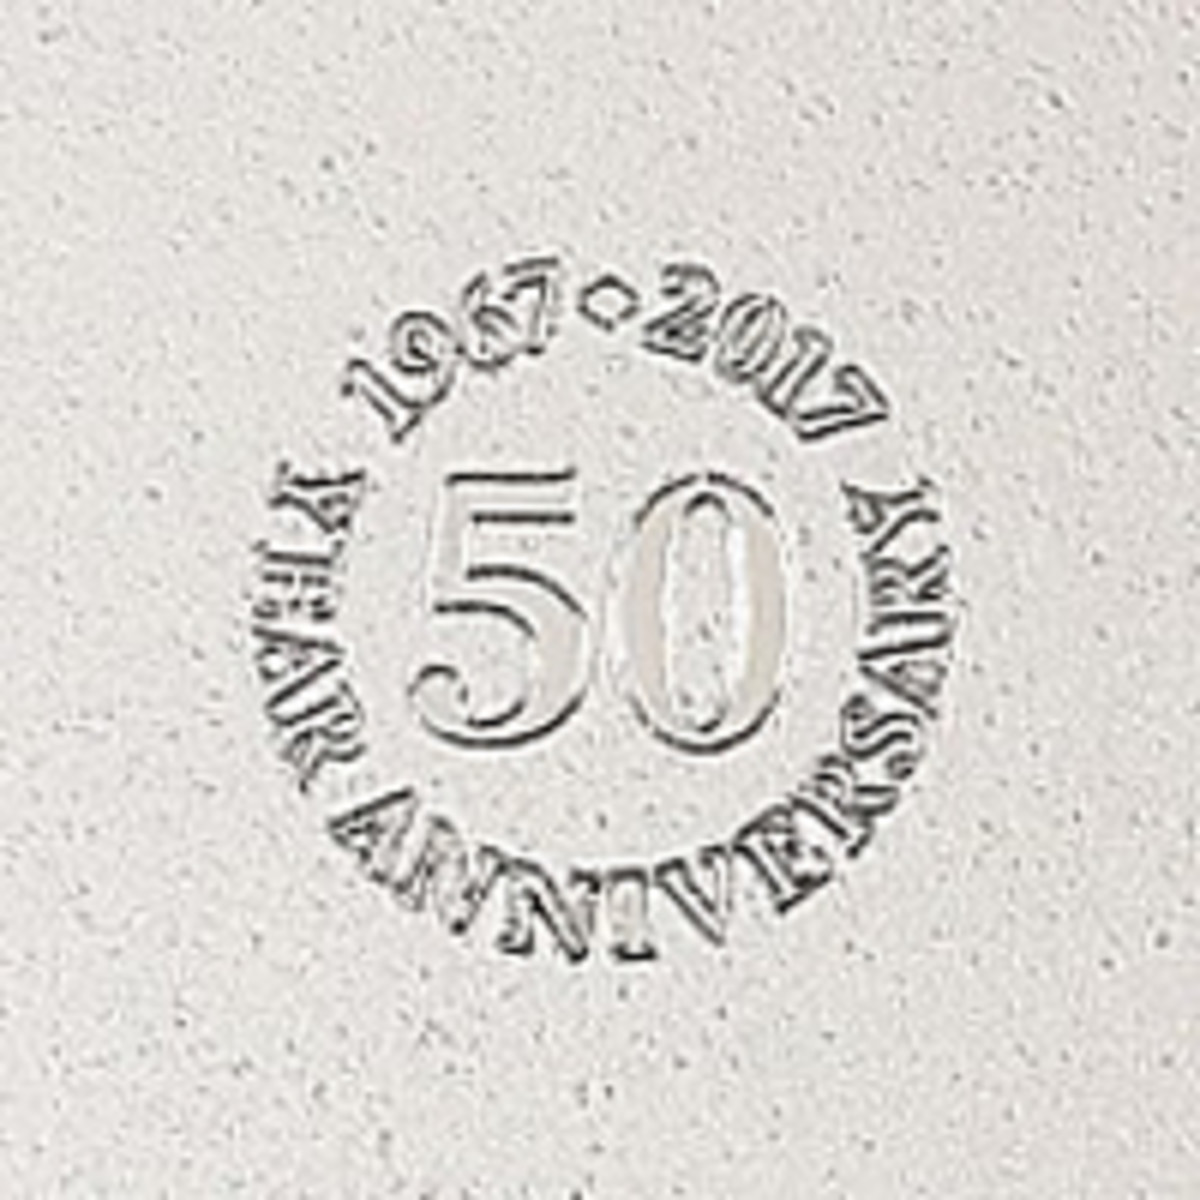 50th anniversary logo that appears on the reverse of several of the 2017 celebratory Krugerrand issues. (Image courtesy & © South African Mint)